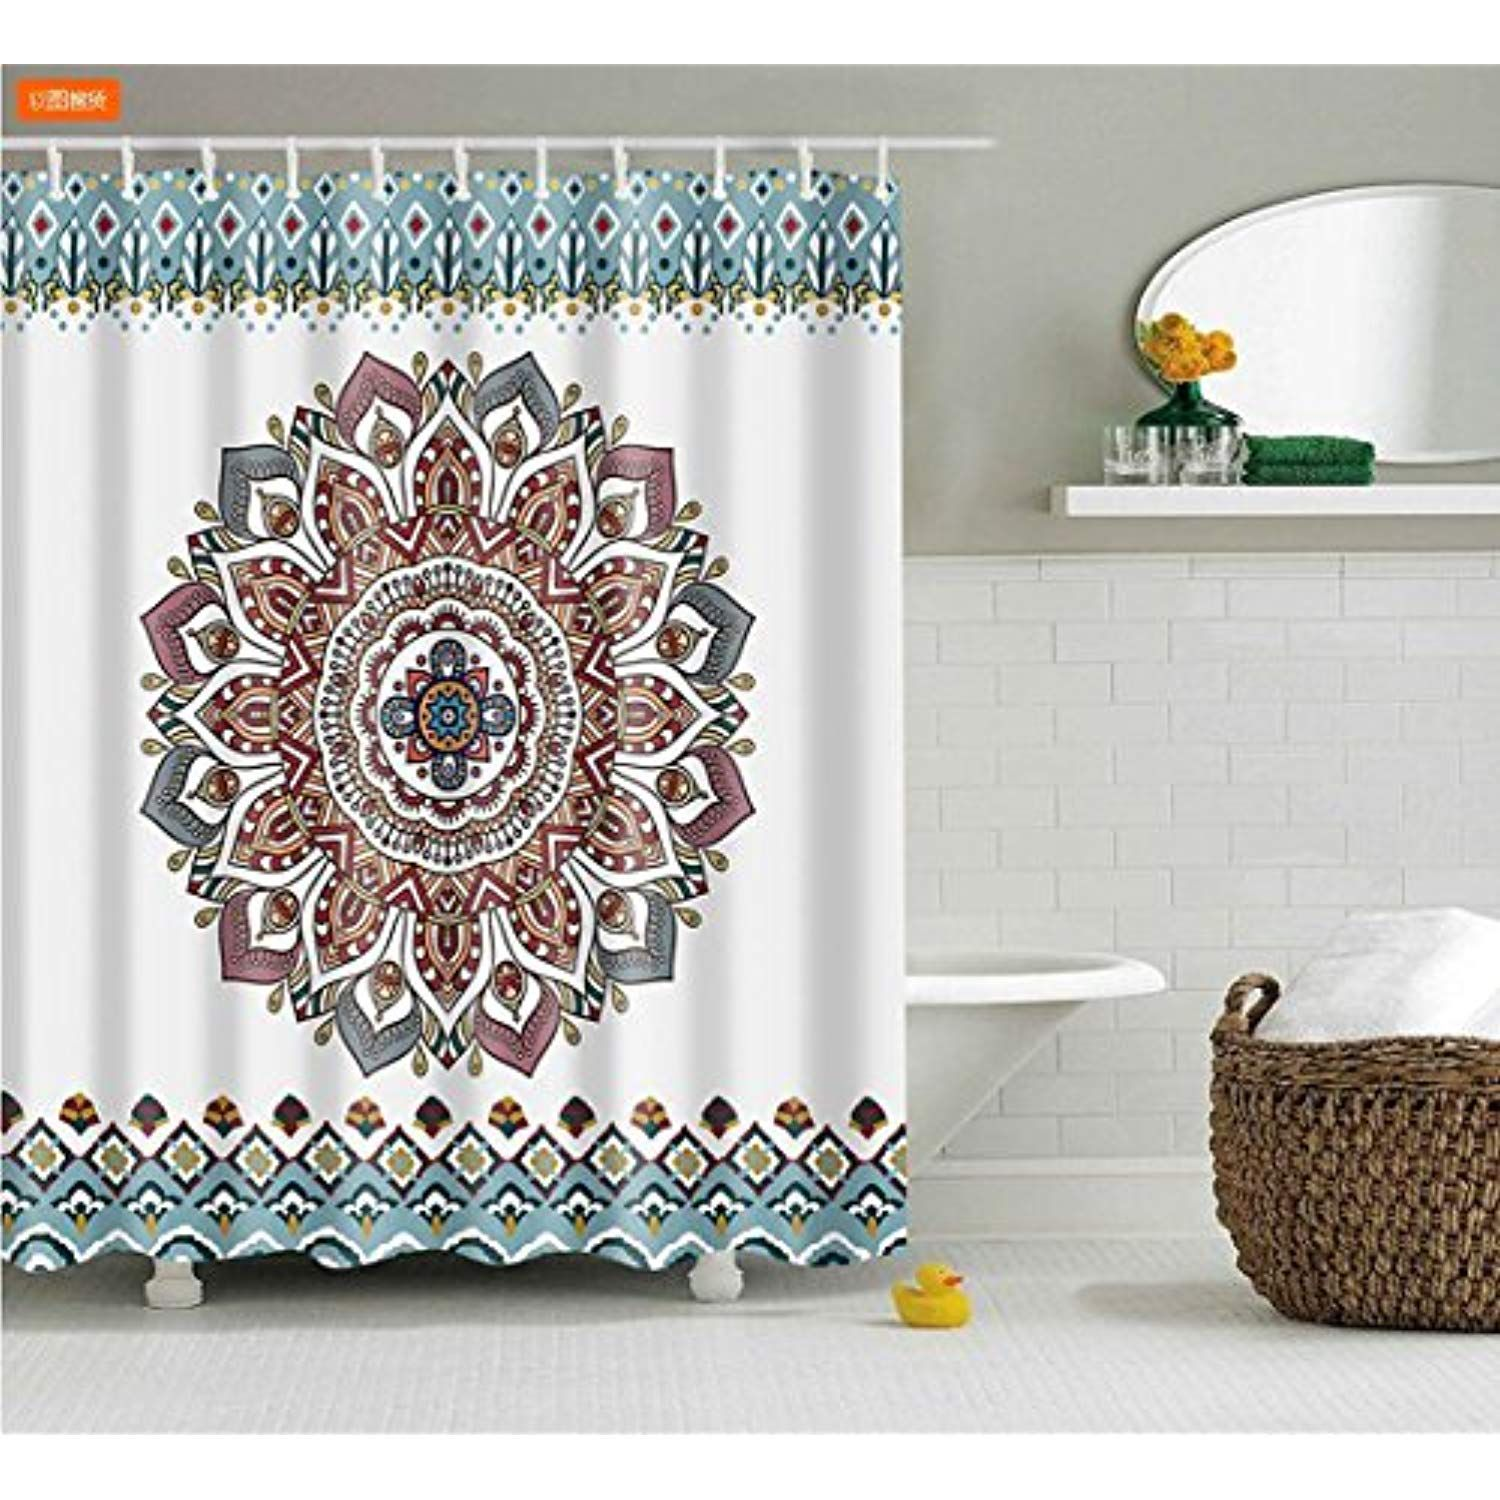 Isearex Mandala Bohemian Waterproof Shower Curtain Hippie Boho